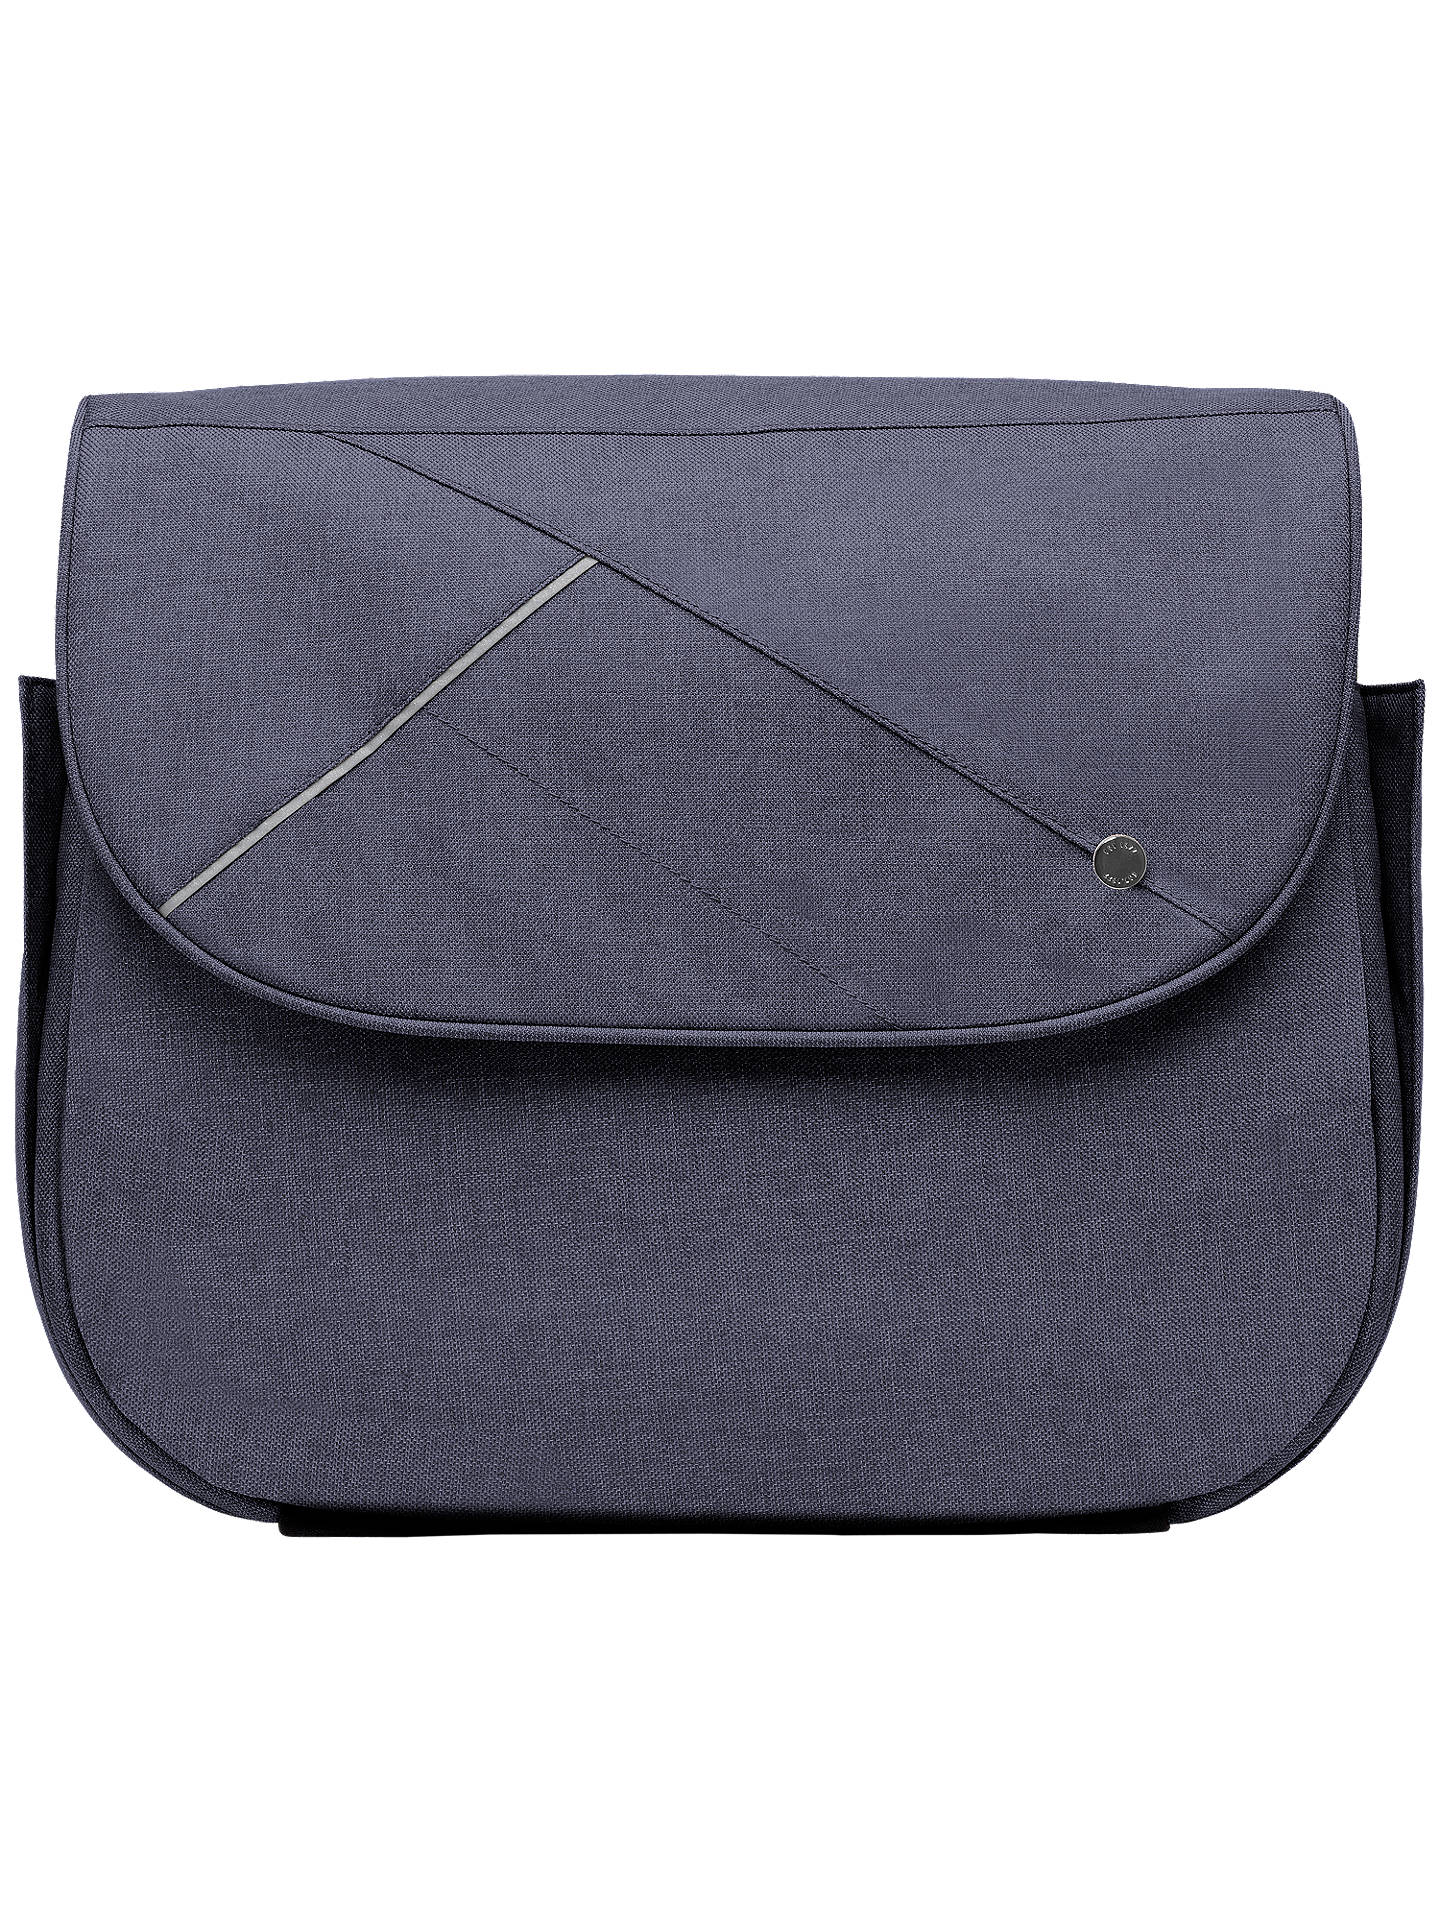 Buy Silver Cross Cross Body Changing Bag, Midnight Blue Online at johnlewis.com